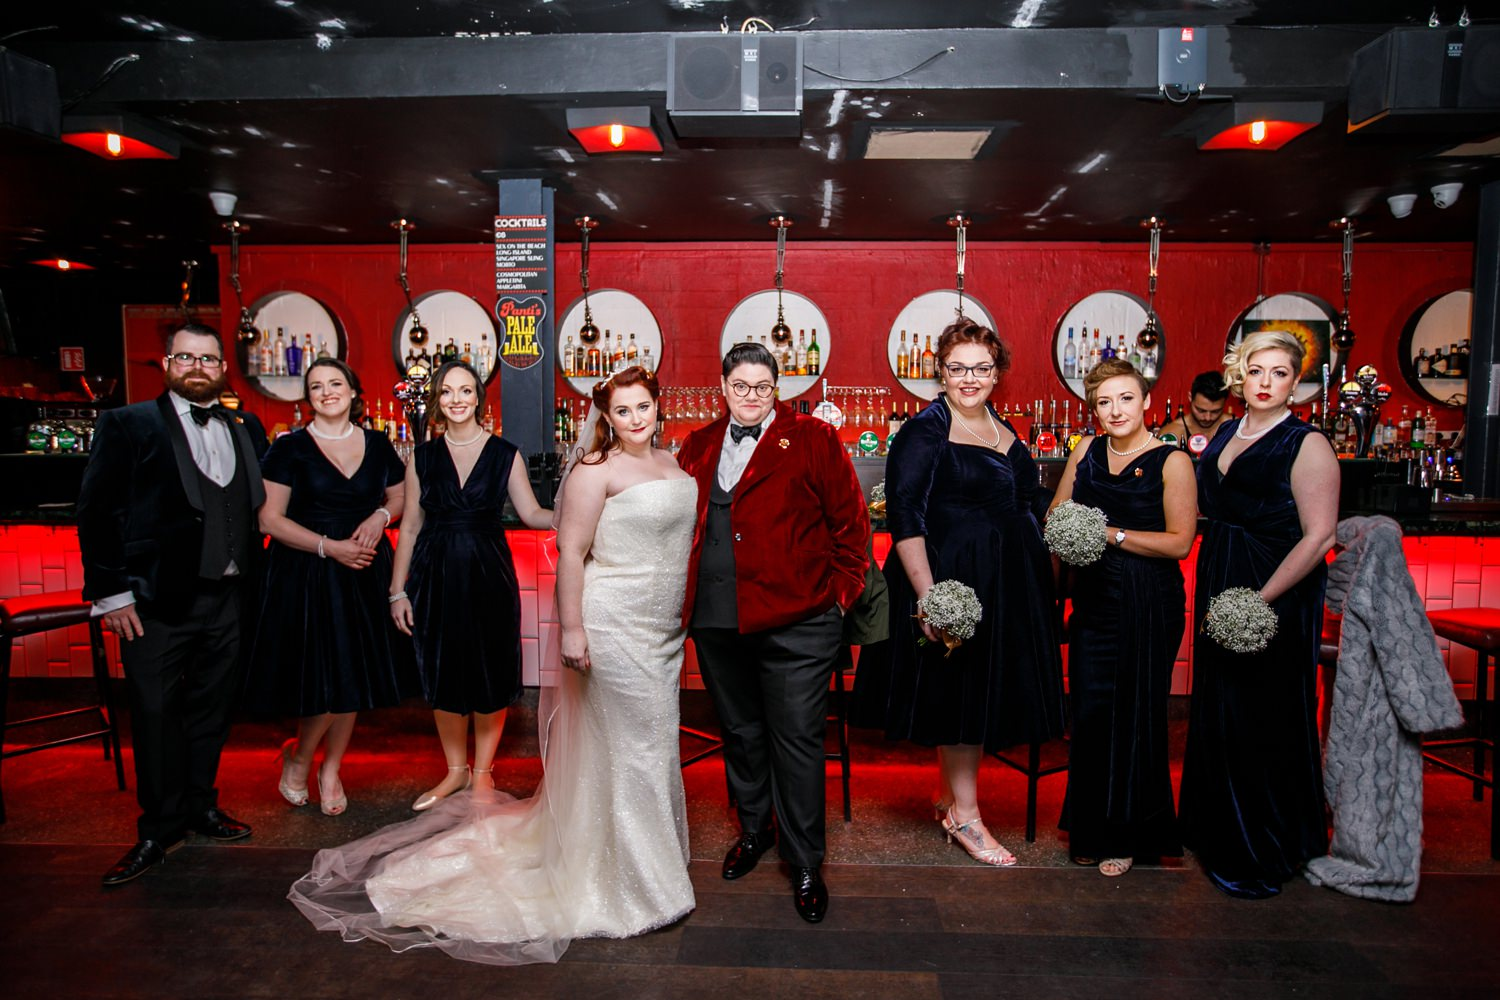 Elisha-Clarke-Photography-Dublin-City-Wedding_00440.jpg